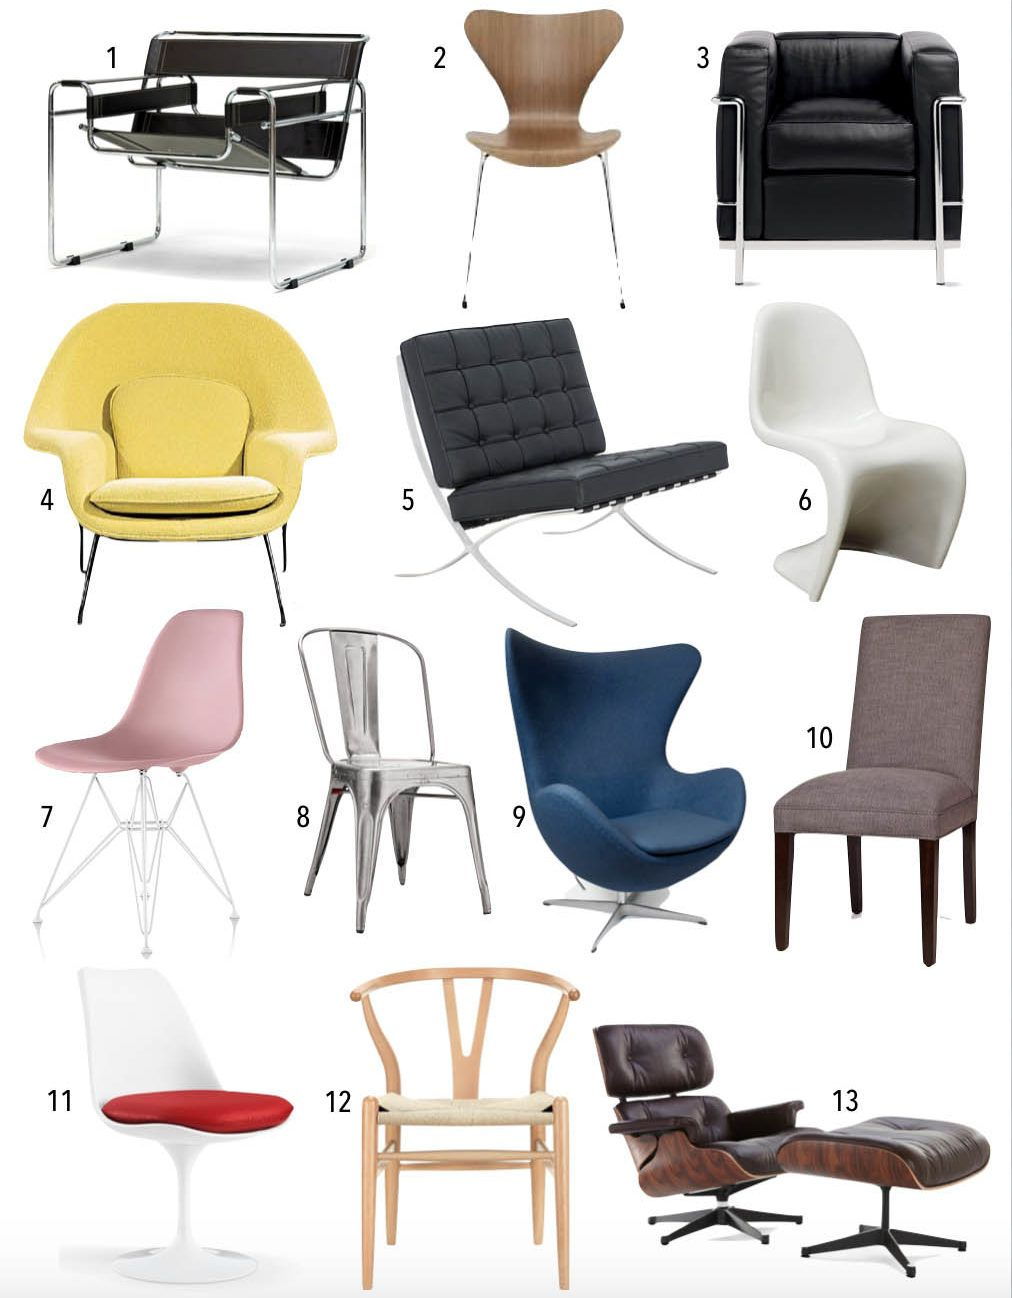 Design Quiz Famous 20th Century Chairs Thestylesafari Iconic Furniture Design Furniture Design Chair Famous Chair Designs